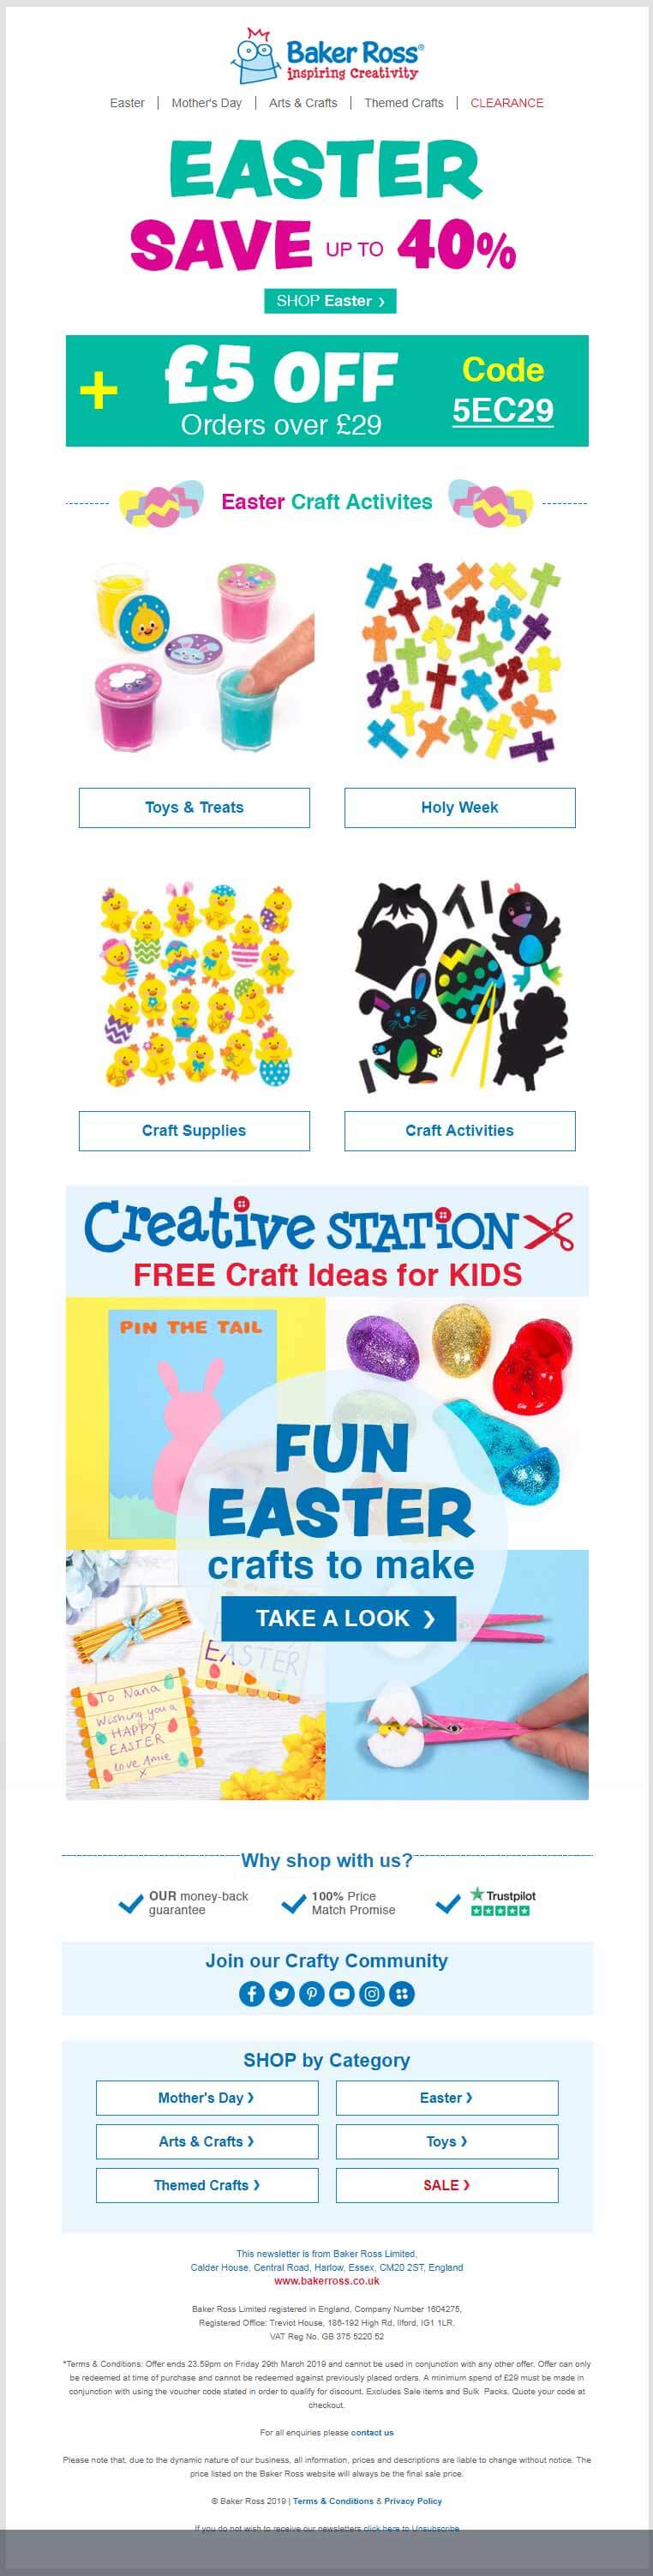 easter email campaign -baker ross